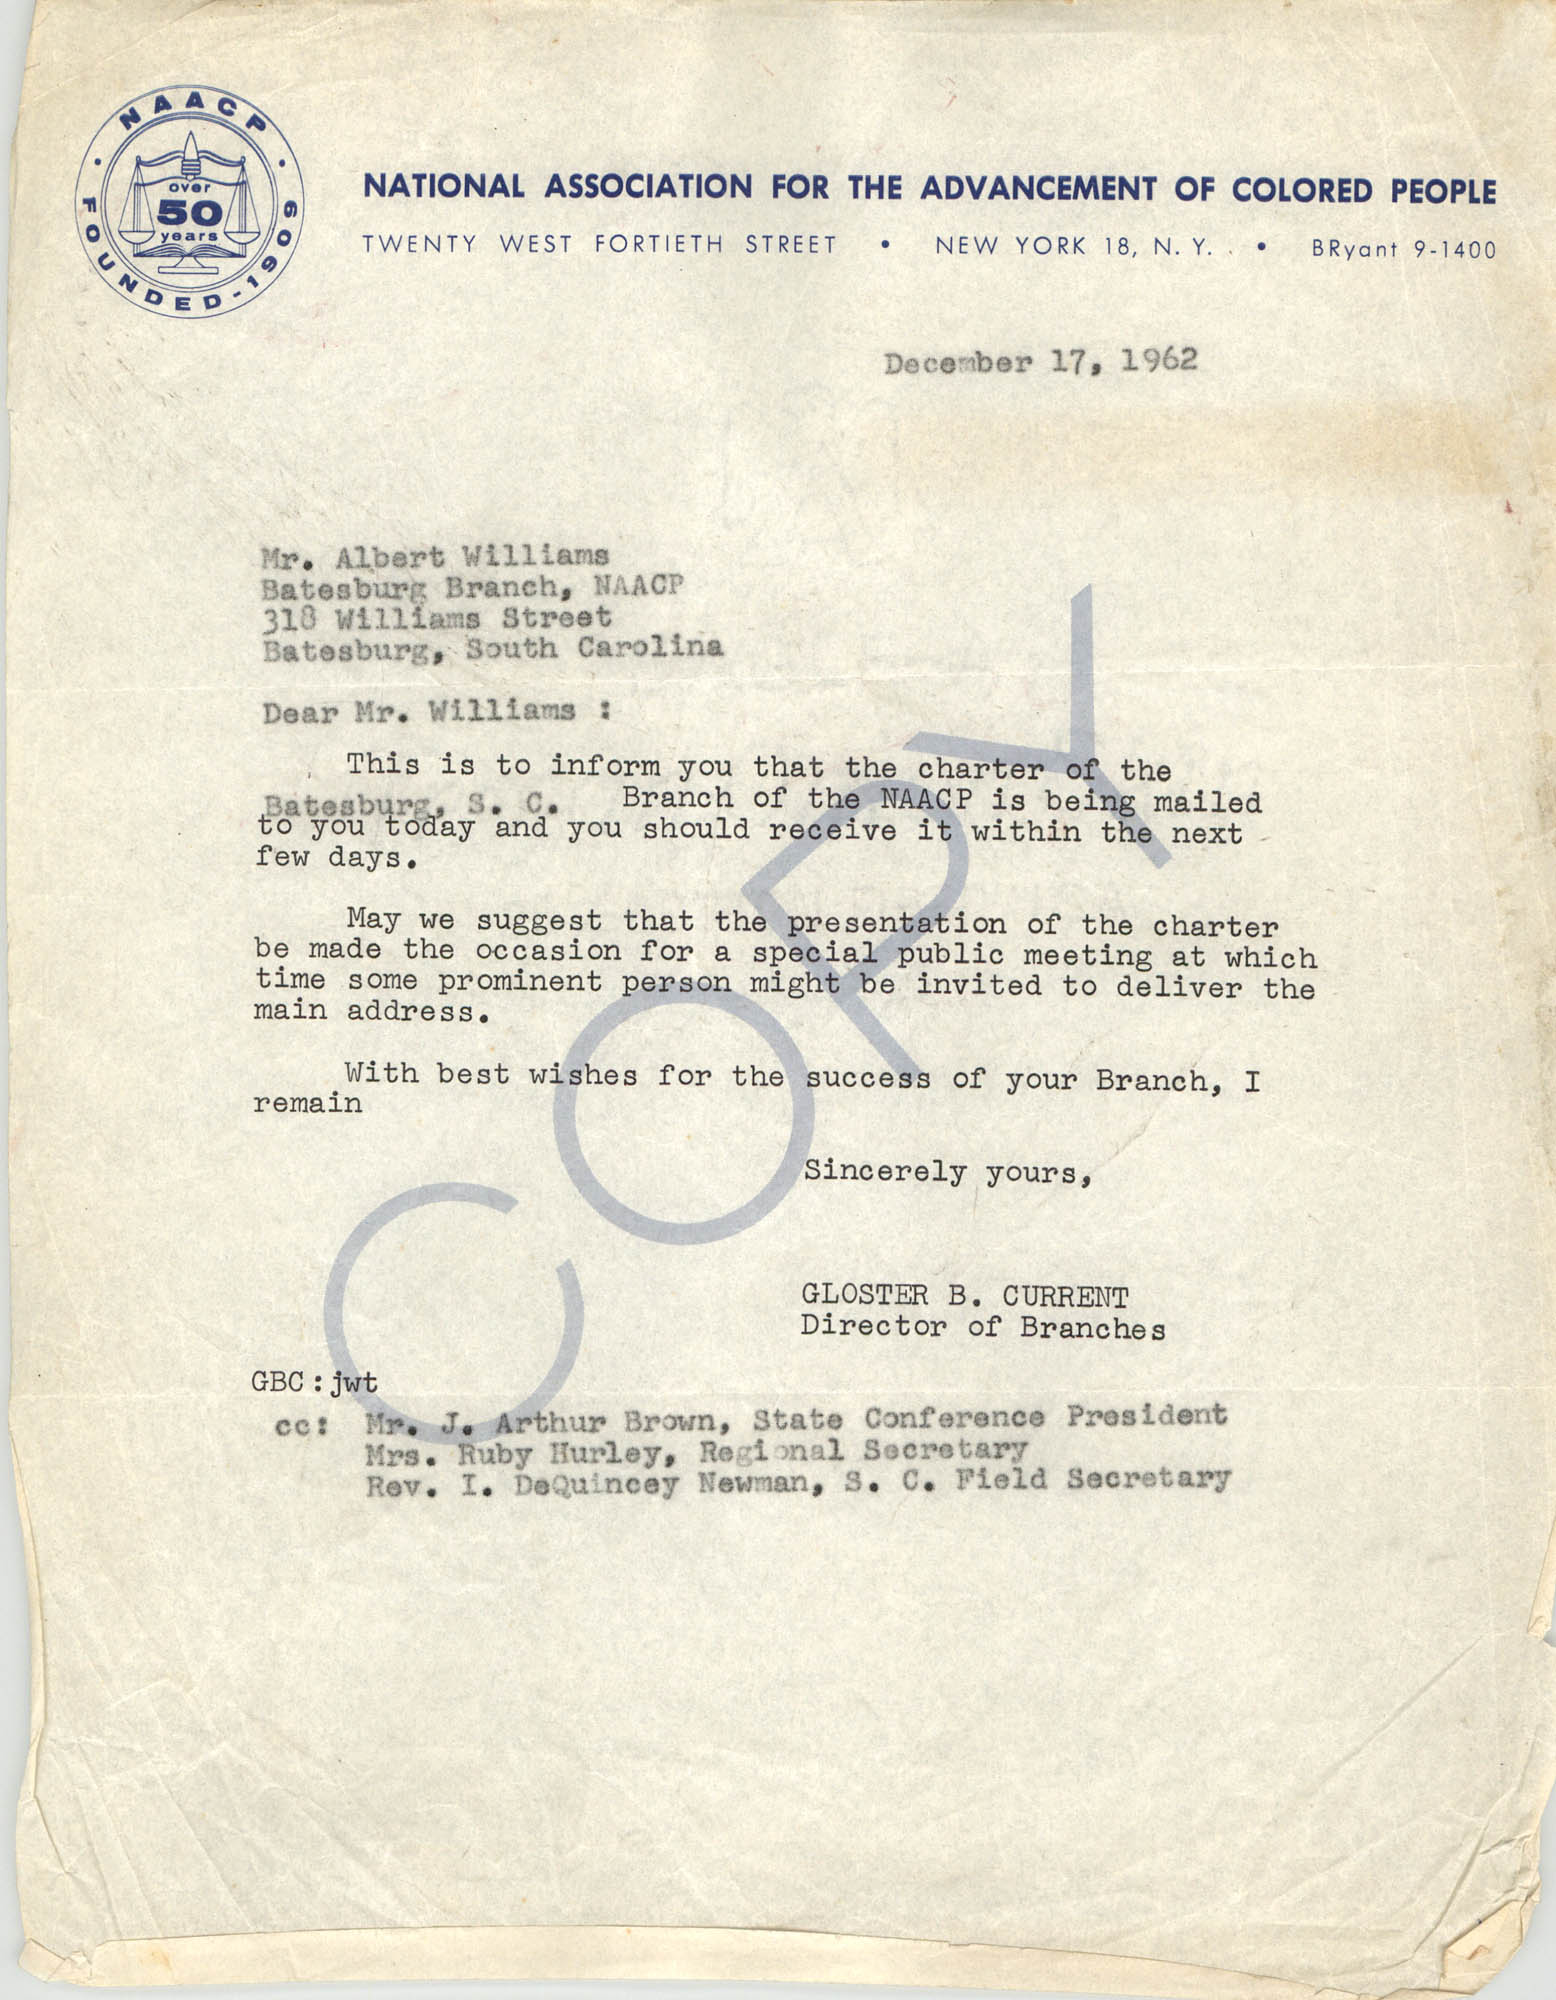 Letter from Gloster B. Current to Albert Williams, December 17, 1962